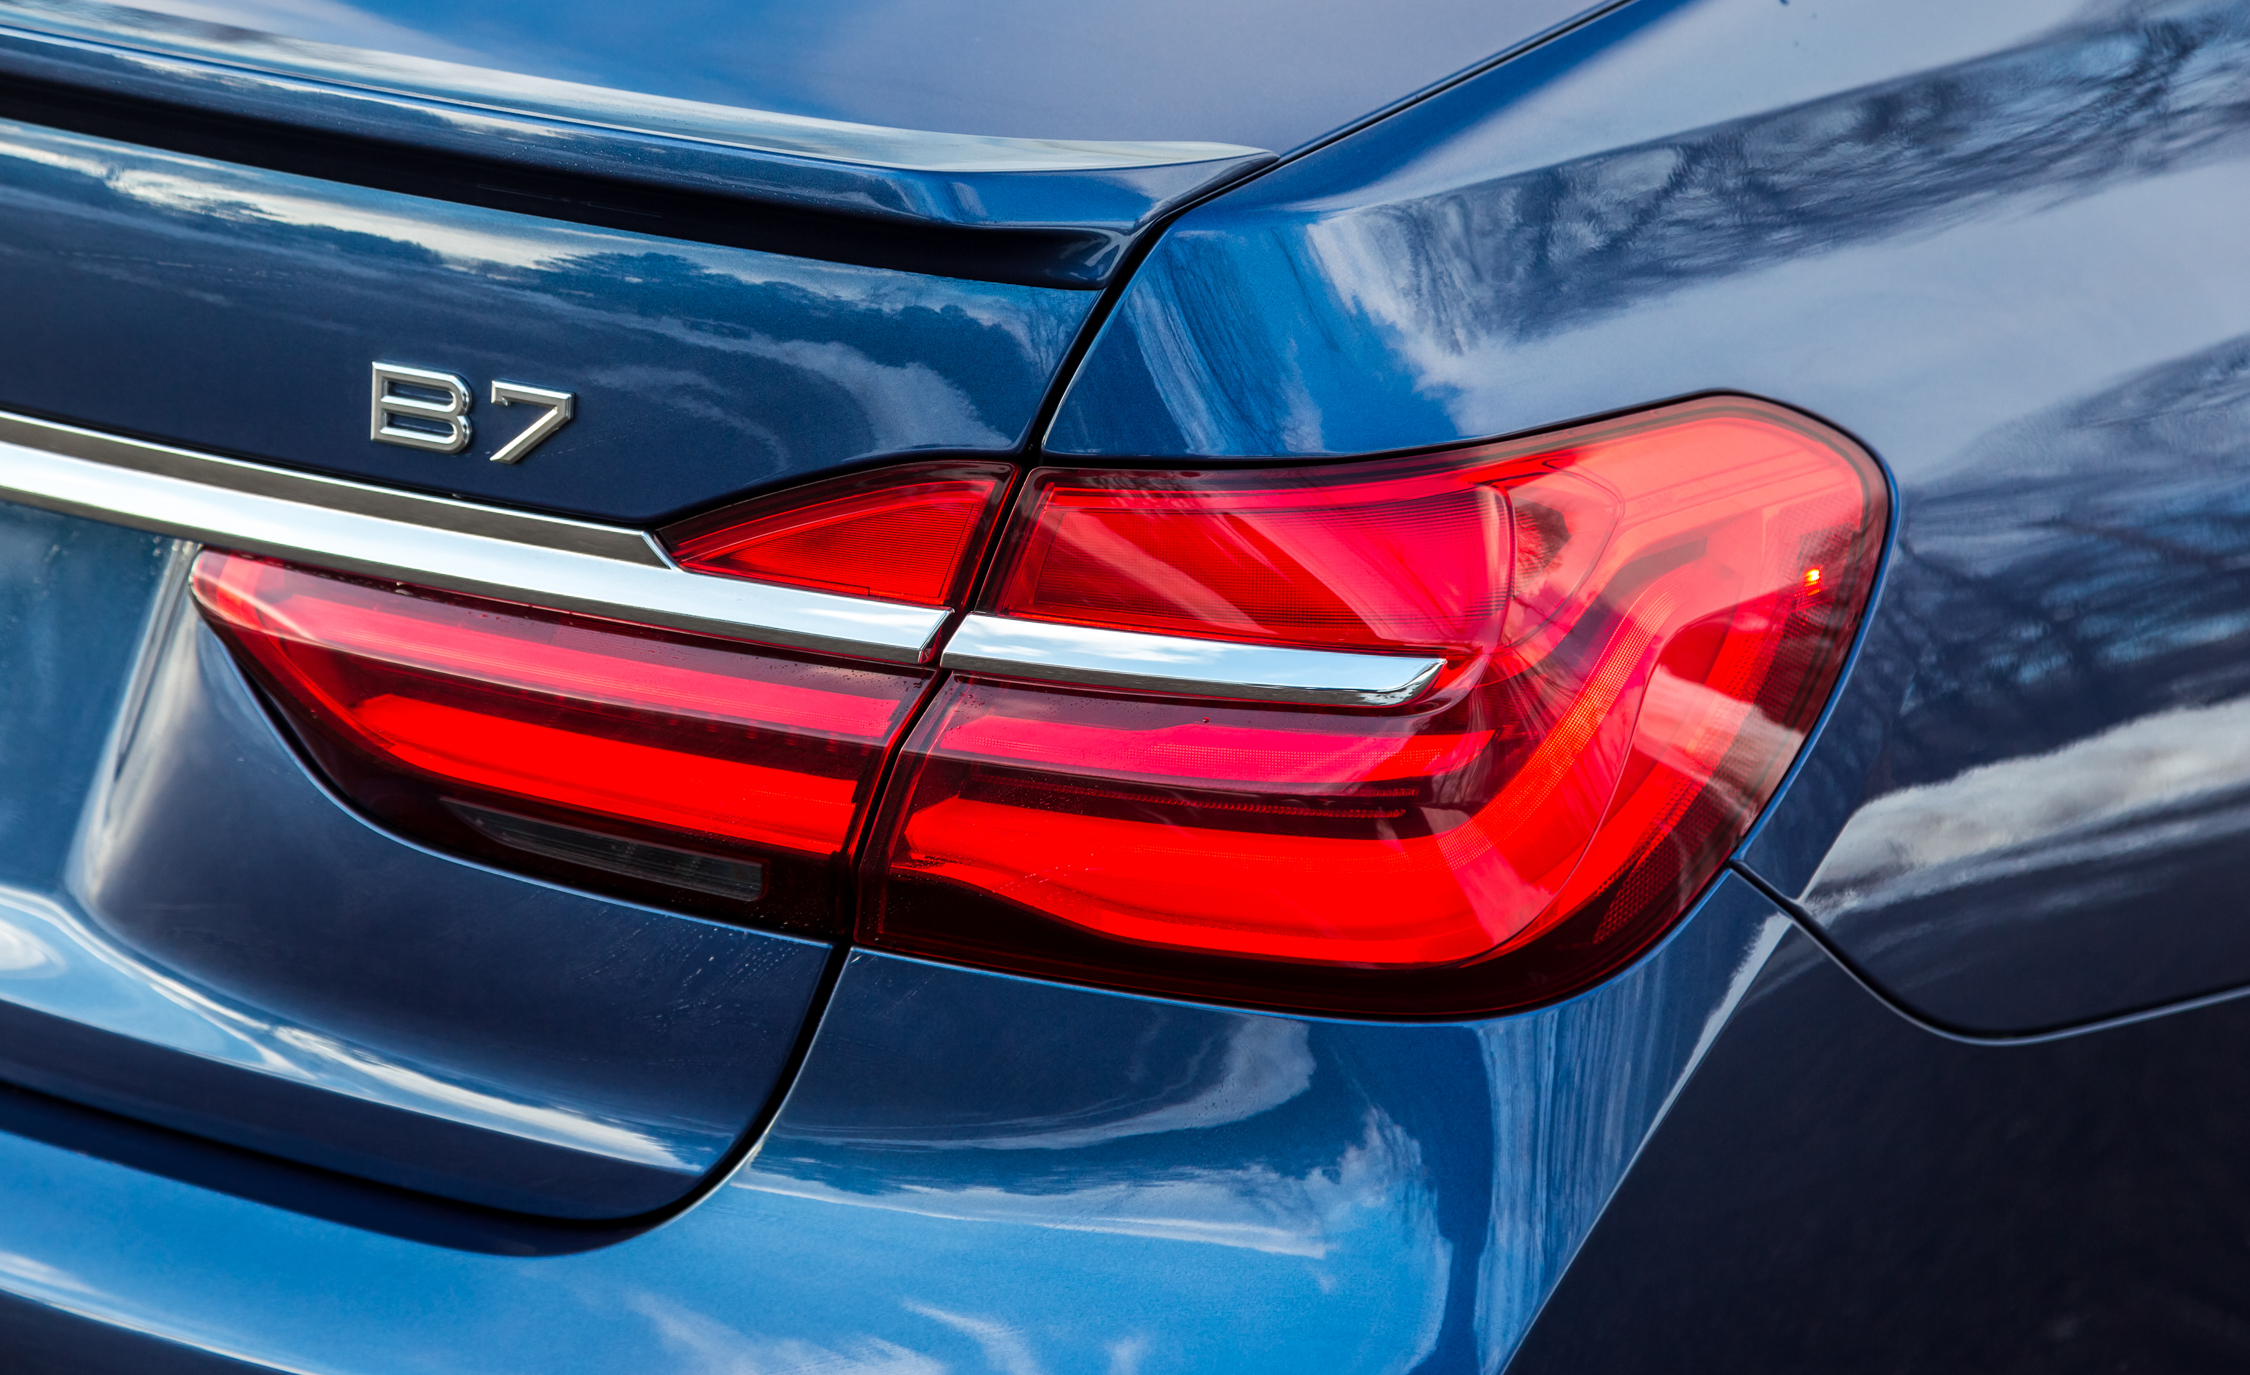 2017 BMW Alpina B7 XDrive Exterior View Taillight And Emblem (Photo 35 of 45)